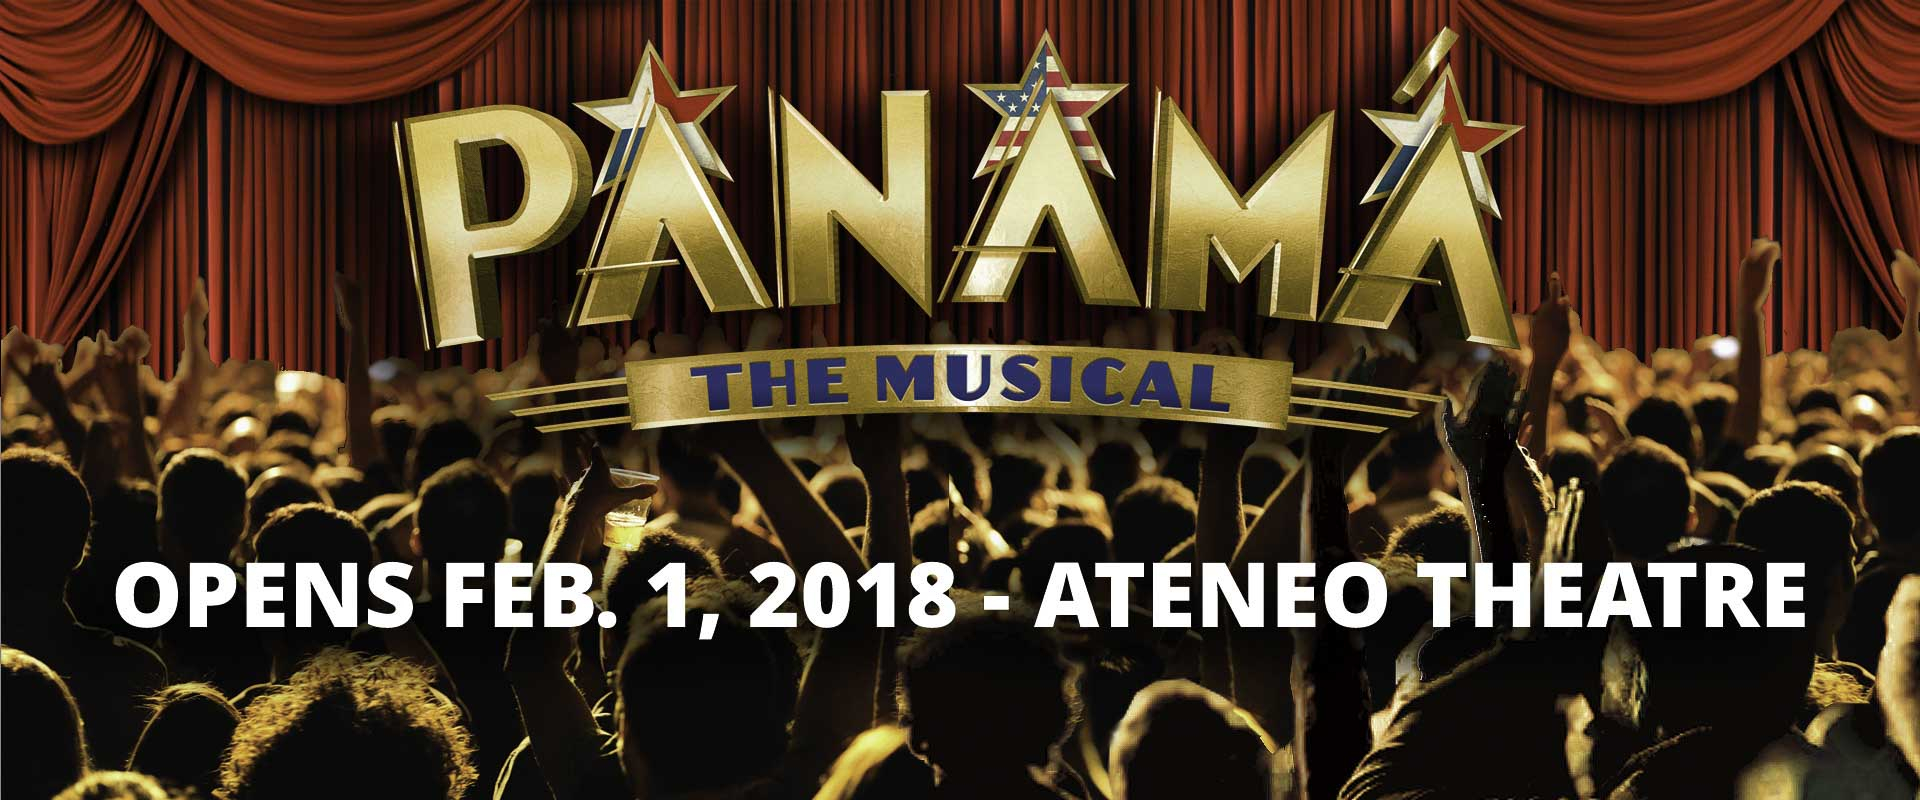 Opens 1 Feb 2018, at Ateneo Theatre   Panama the Musical